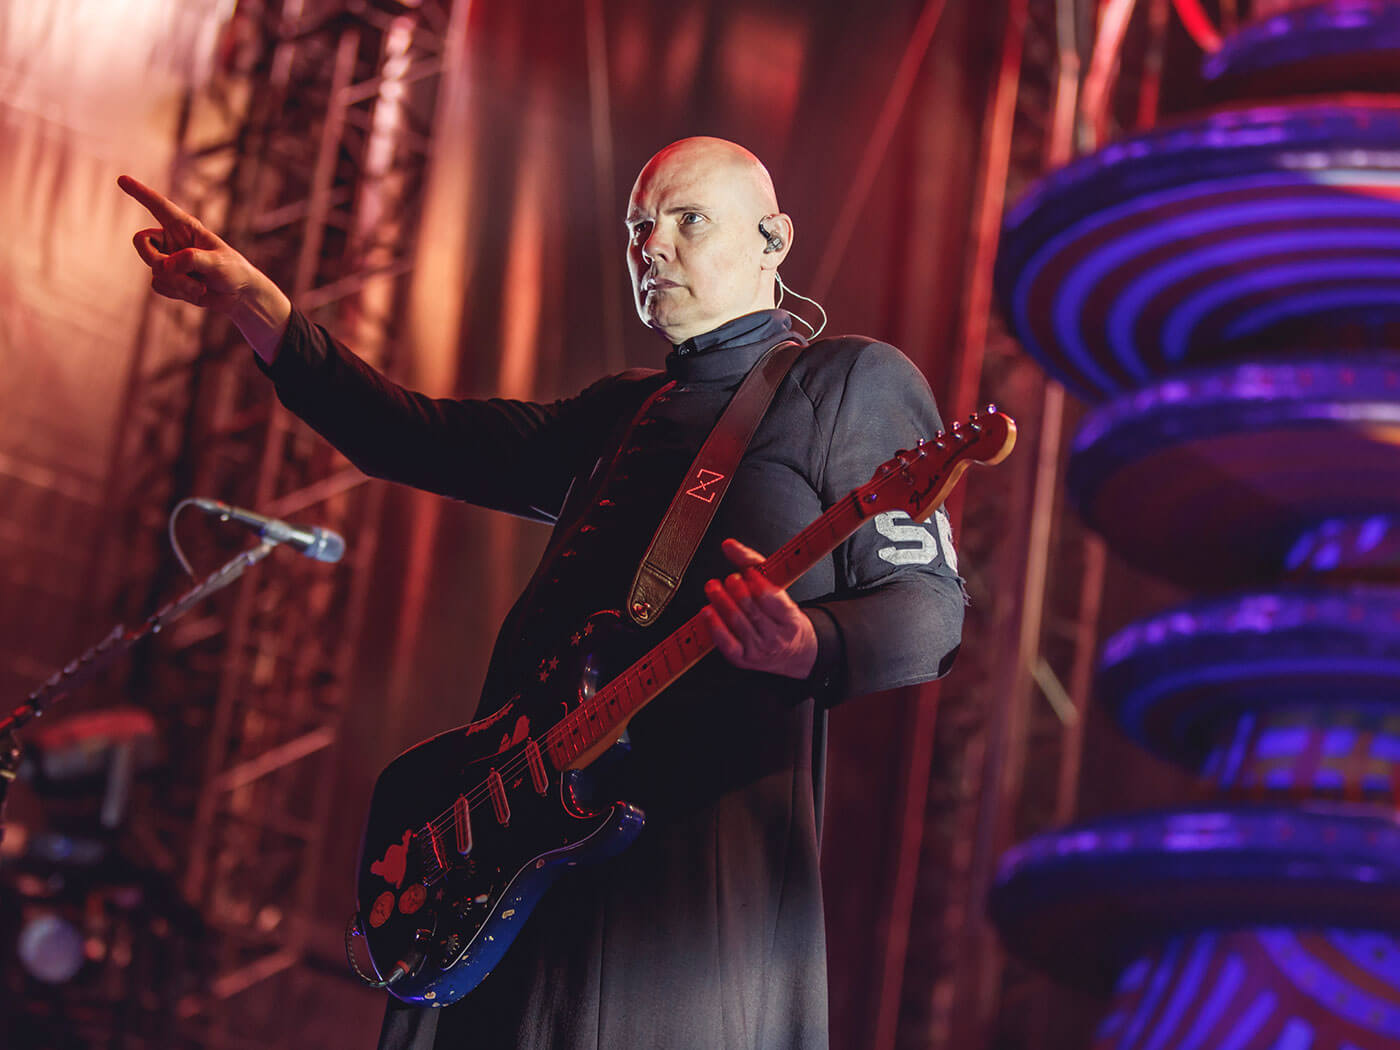 Smashing Pumpkins release two new songs, Cyr and The Colour Of Love    Guitar.com